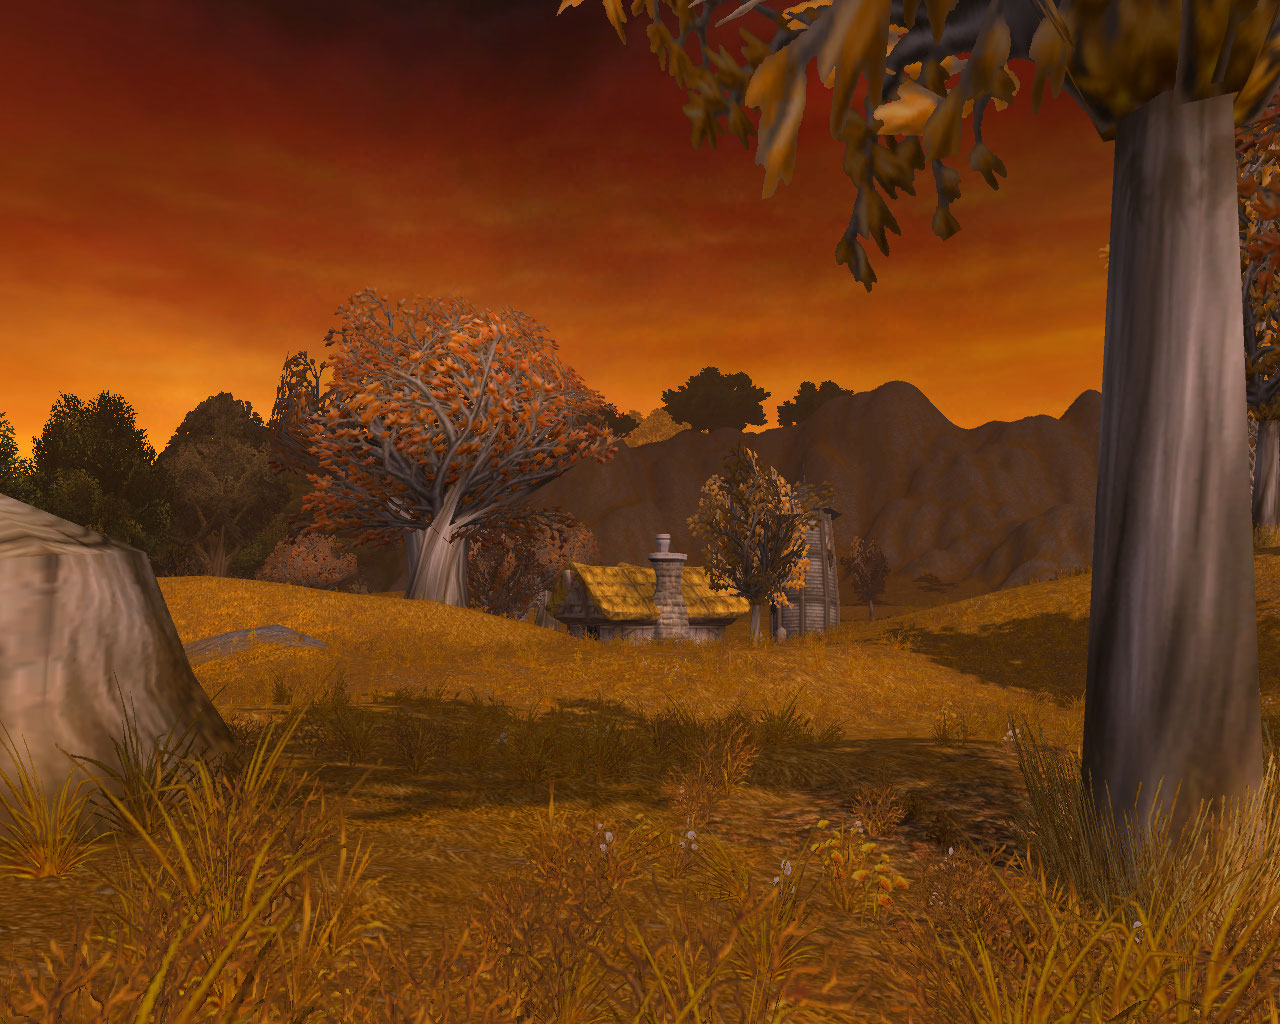 Westfall Harpys Nest Blog 1280x1024